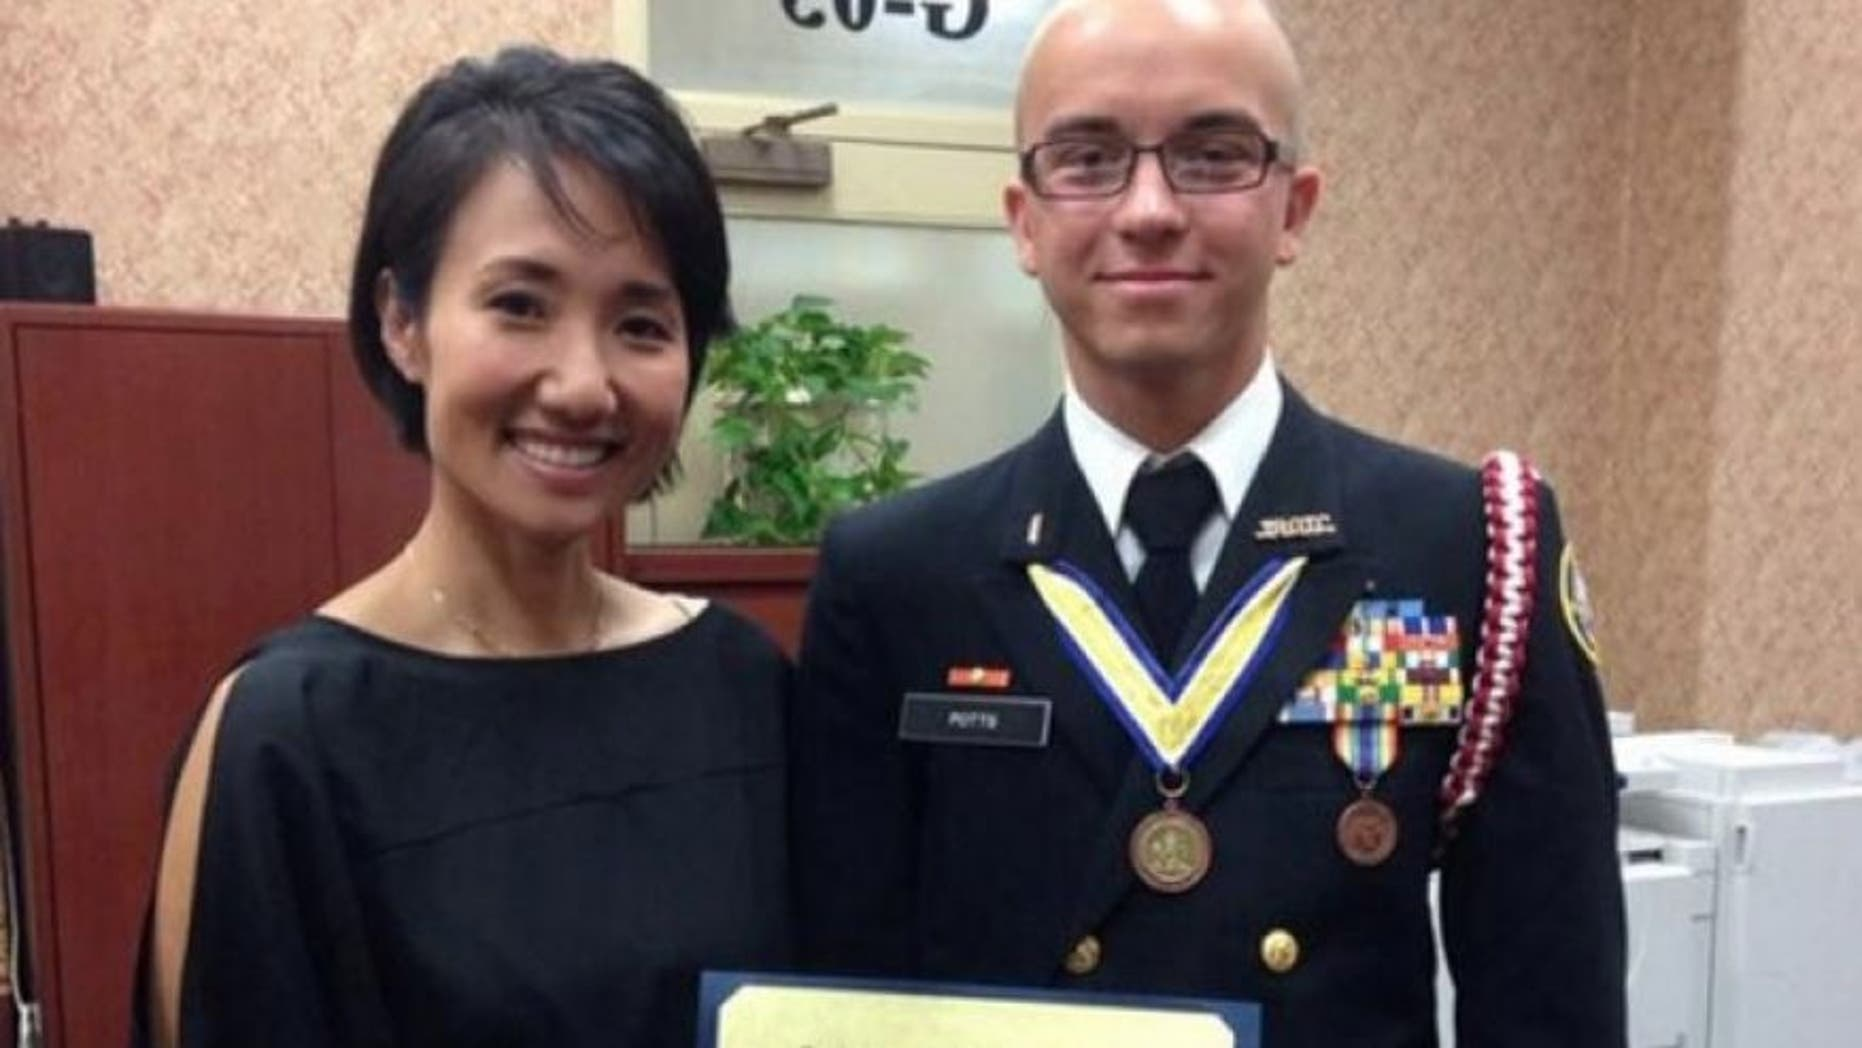 Artur Samarin, 23, was photographed with Rep. Patty Kim after he was inducted into the National Honor Society